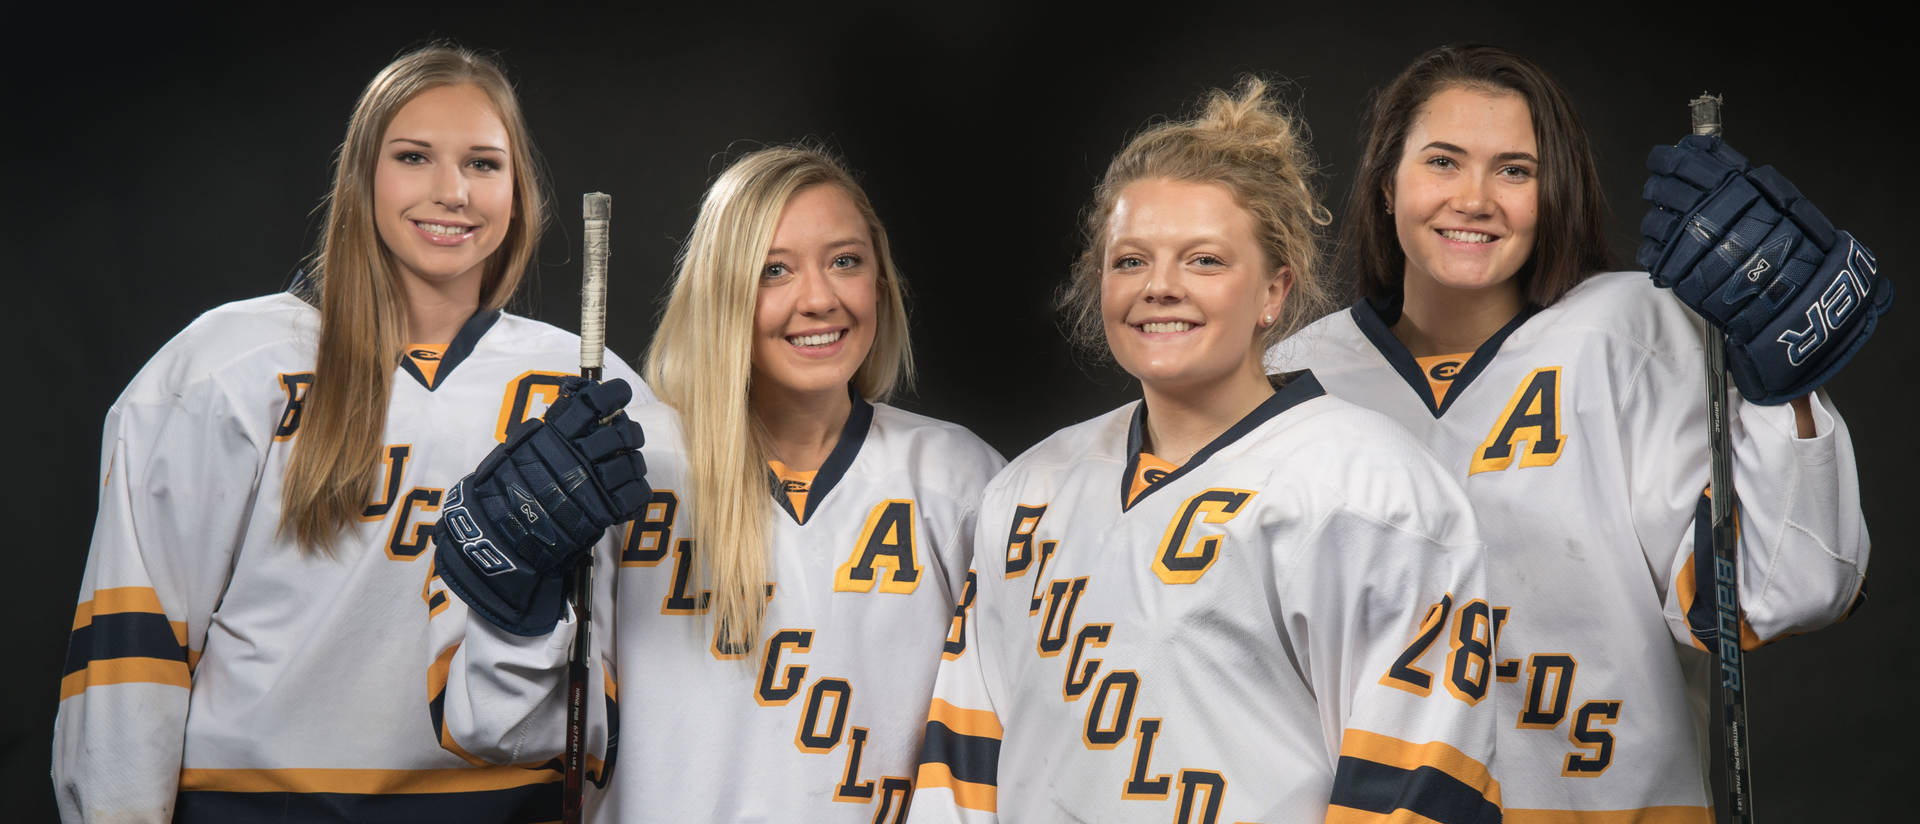 A new opponent: Blugold women's hockey takes on cancer in ...